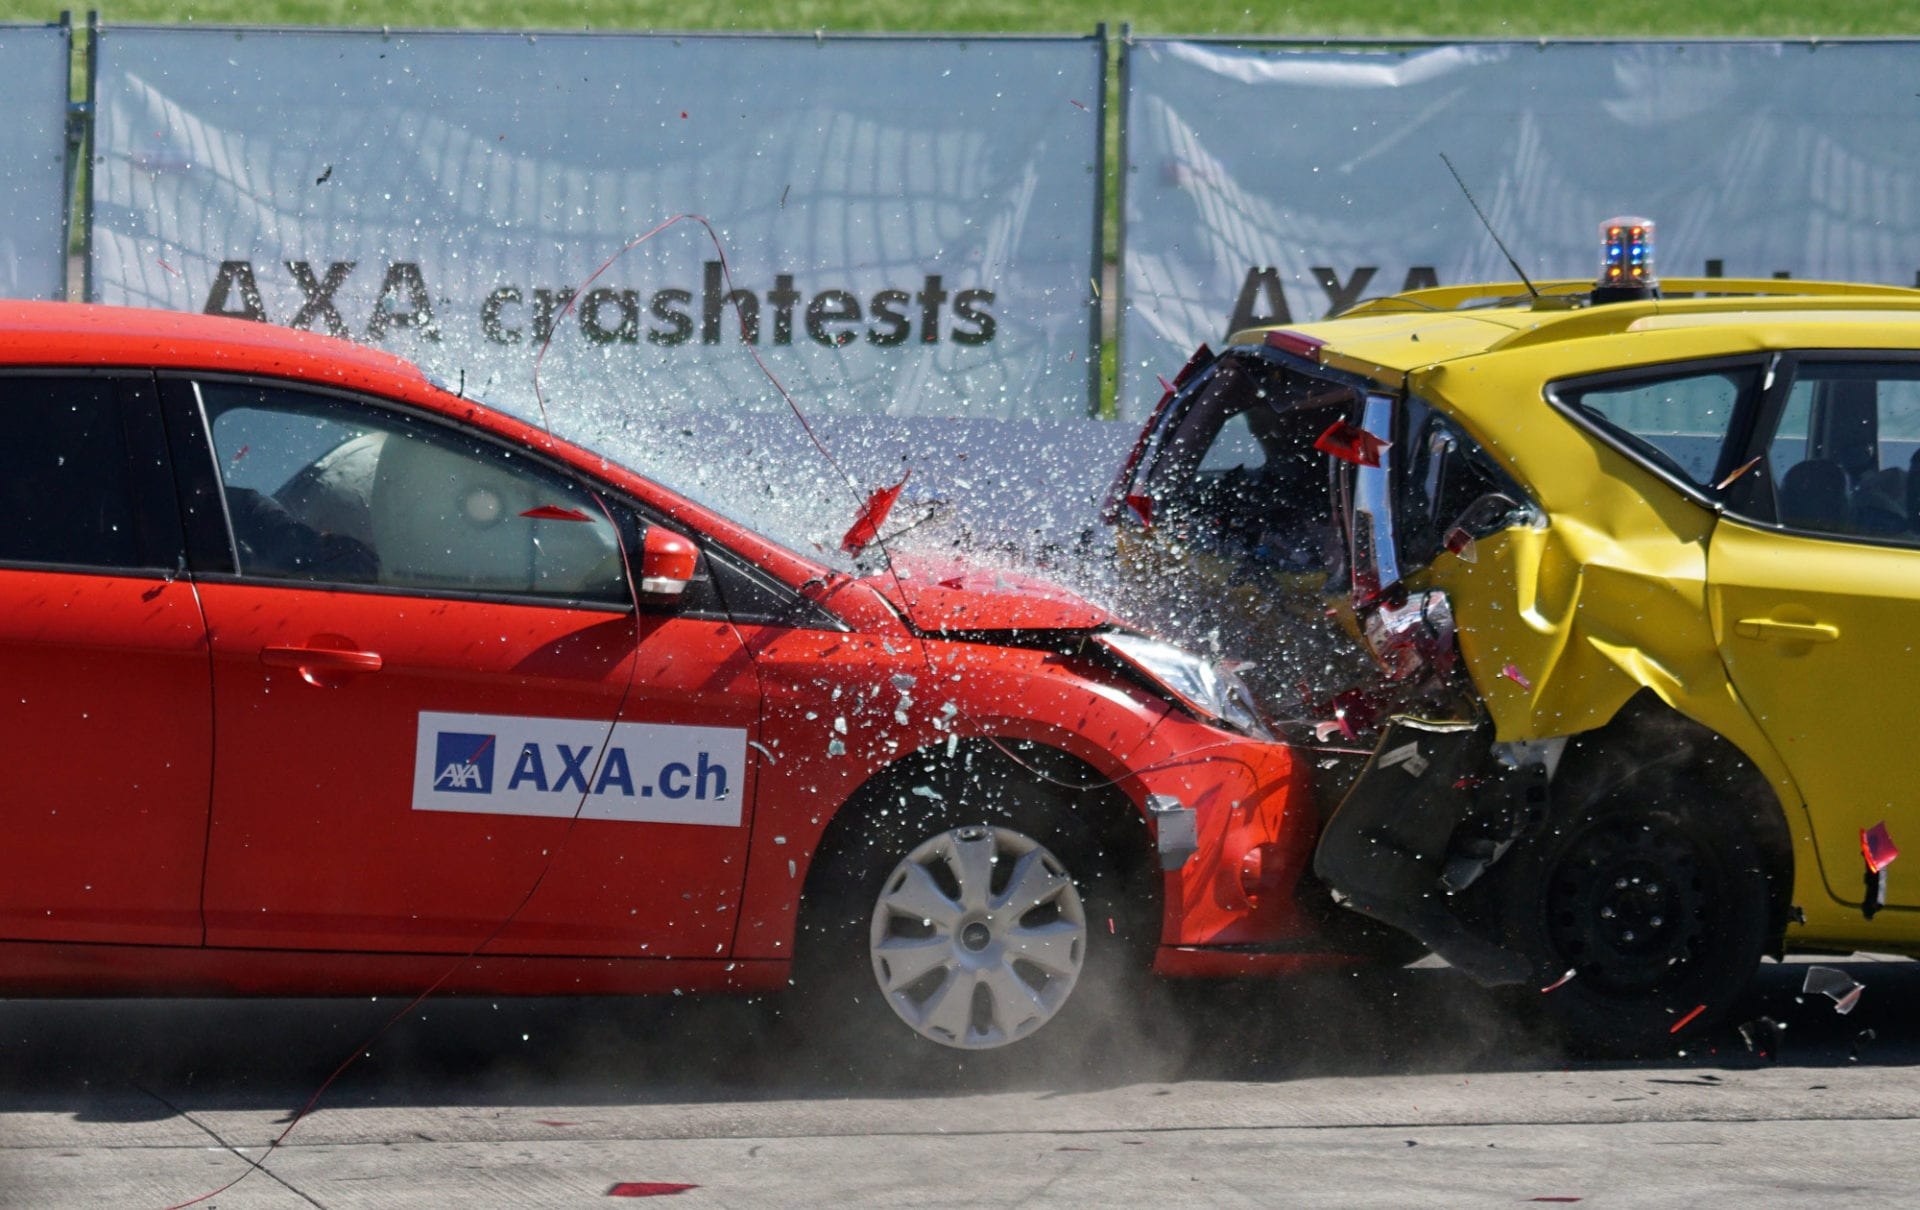 Car or motor vehicle accident with airbag deployed